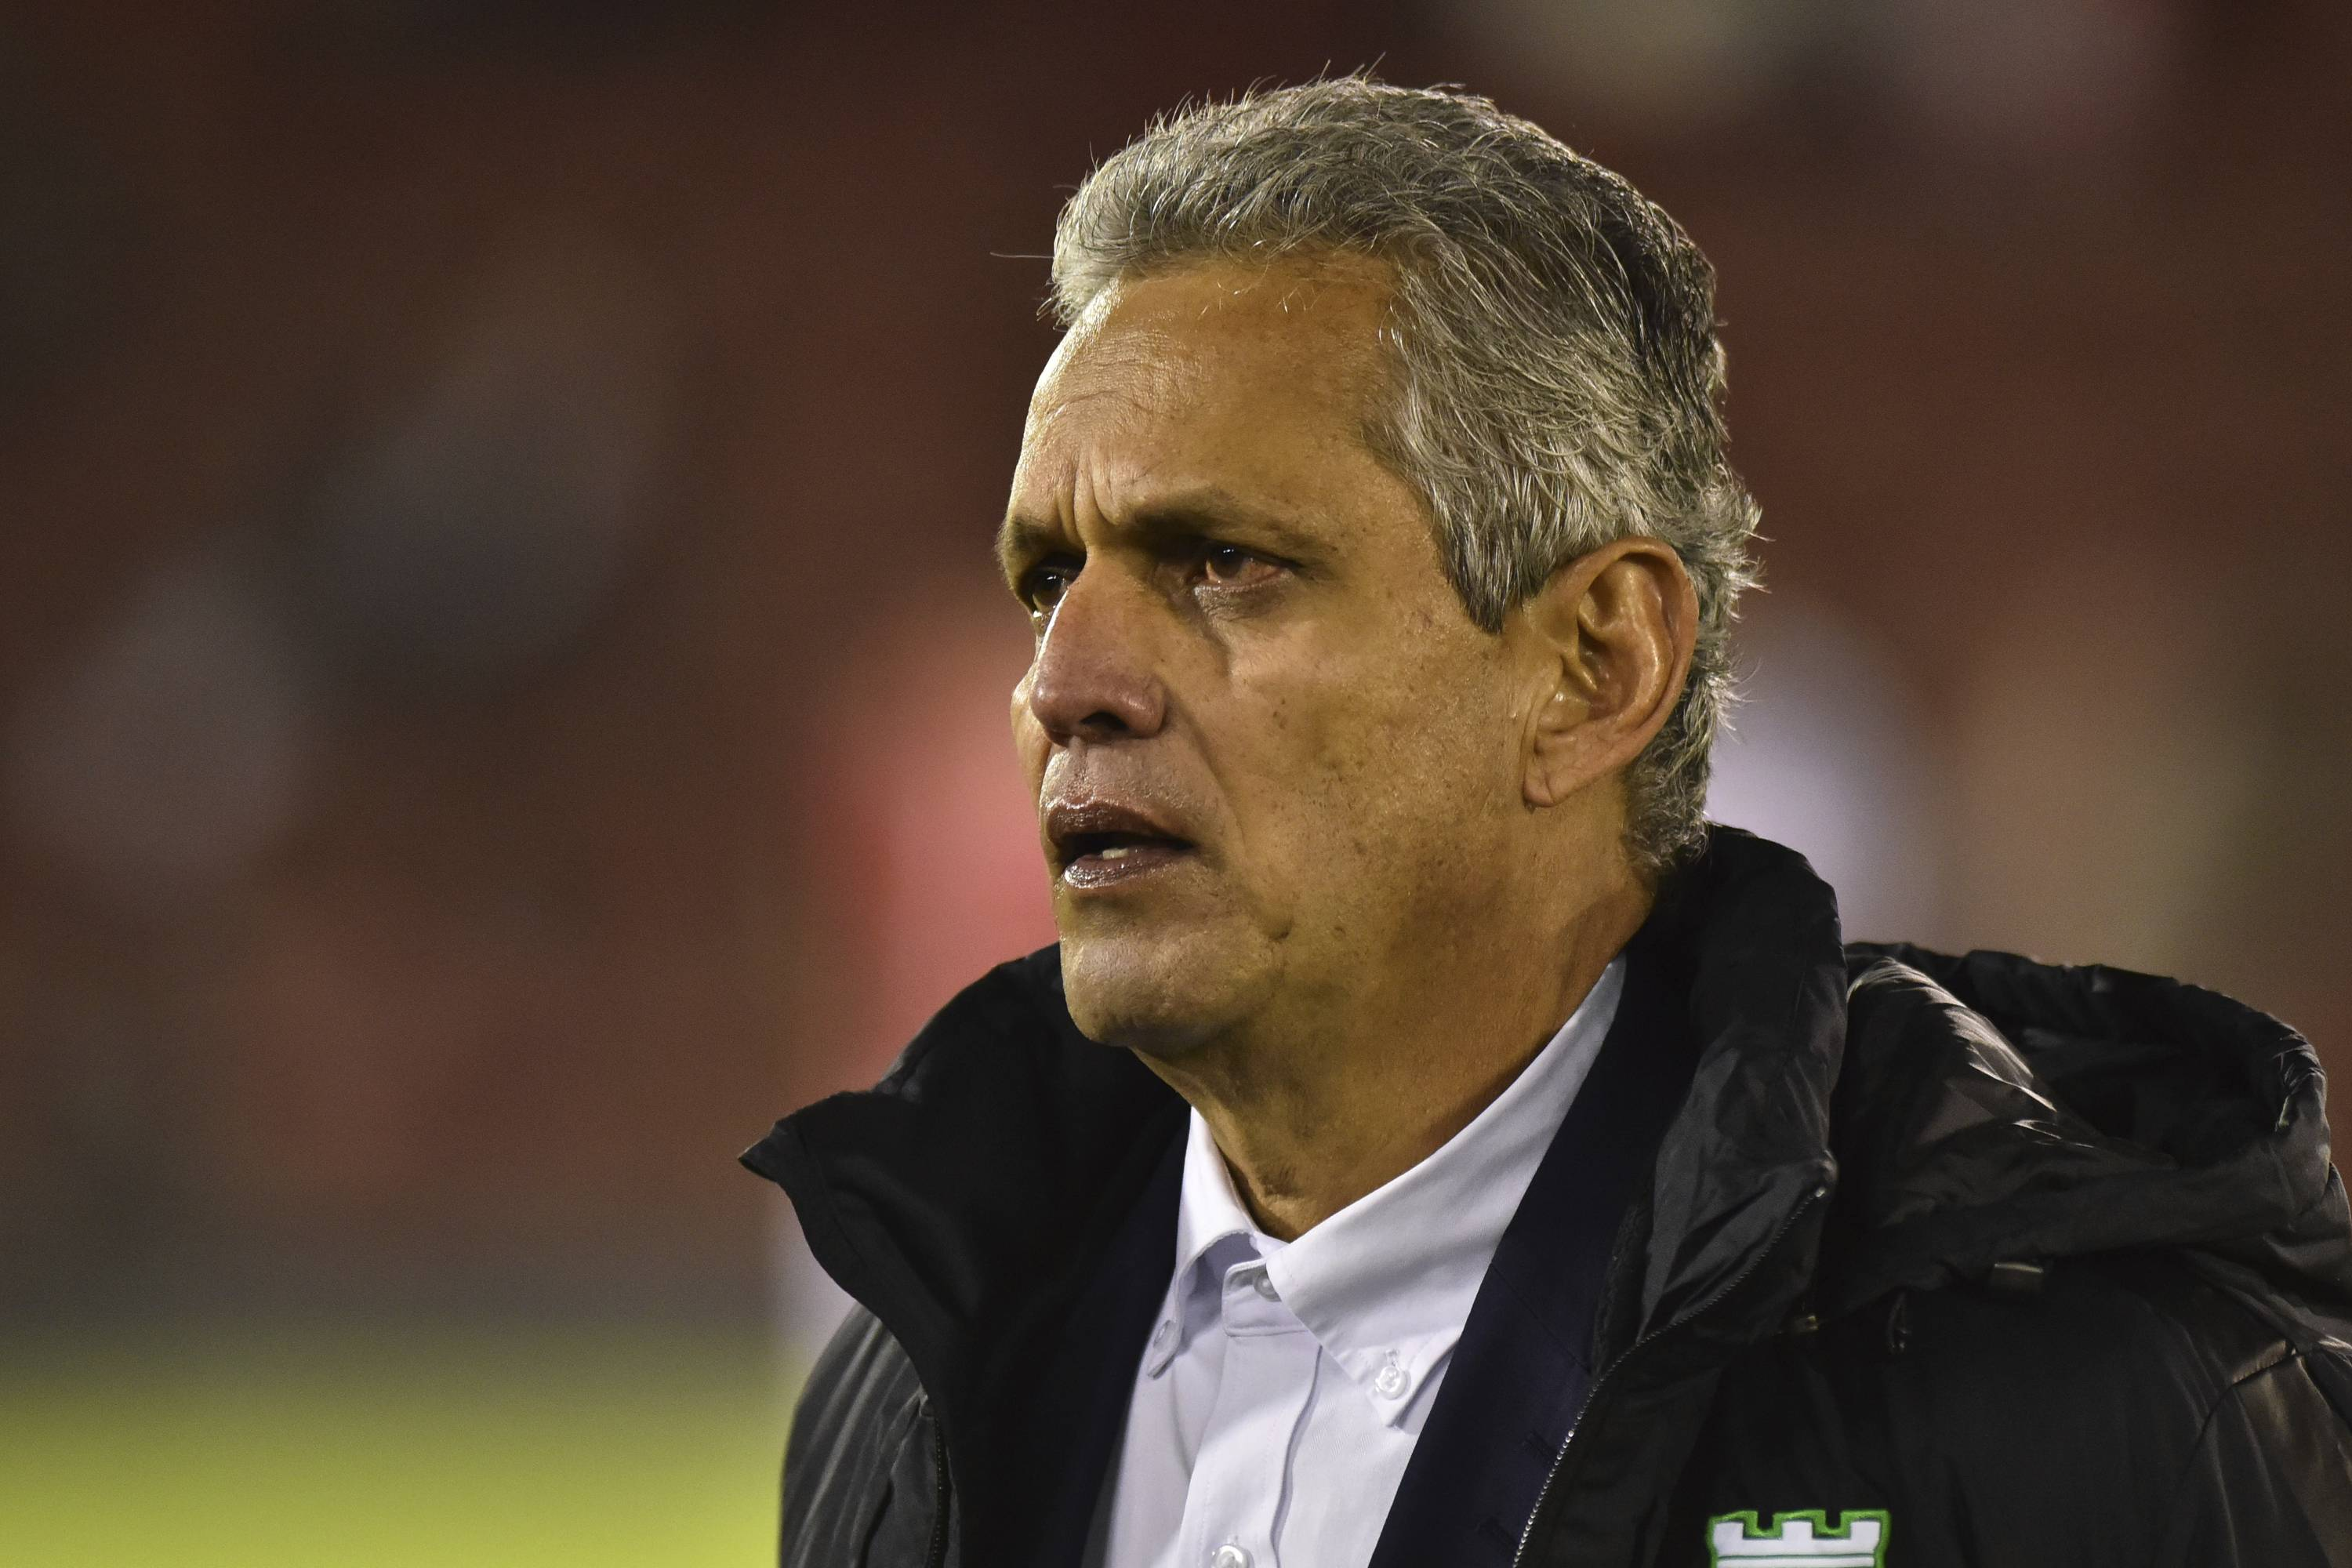 UAE set to appoint new national team head coach